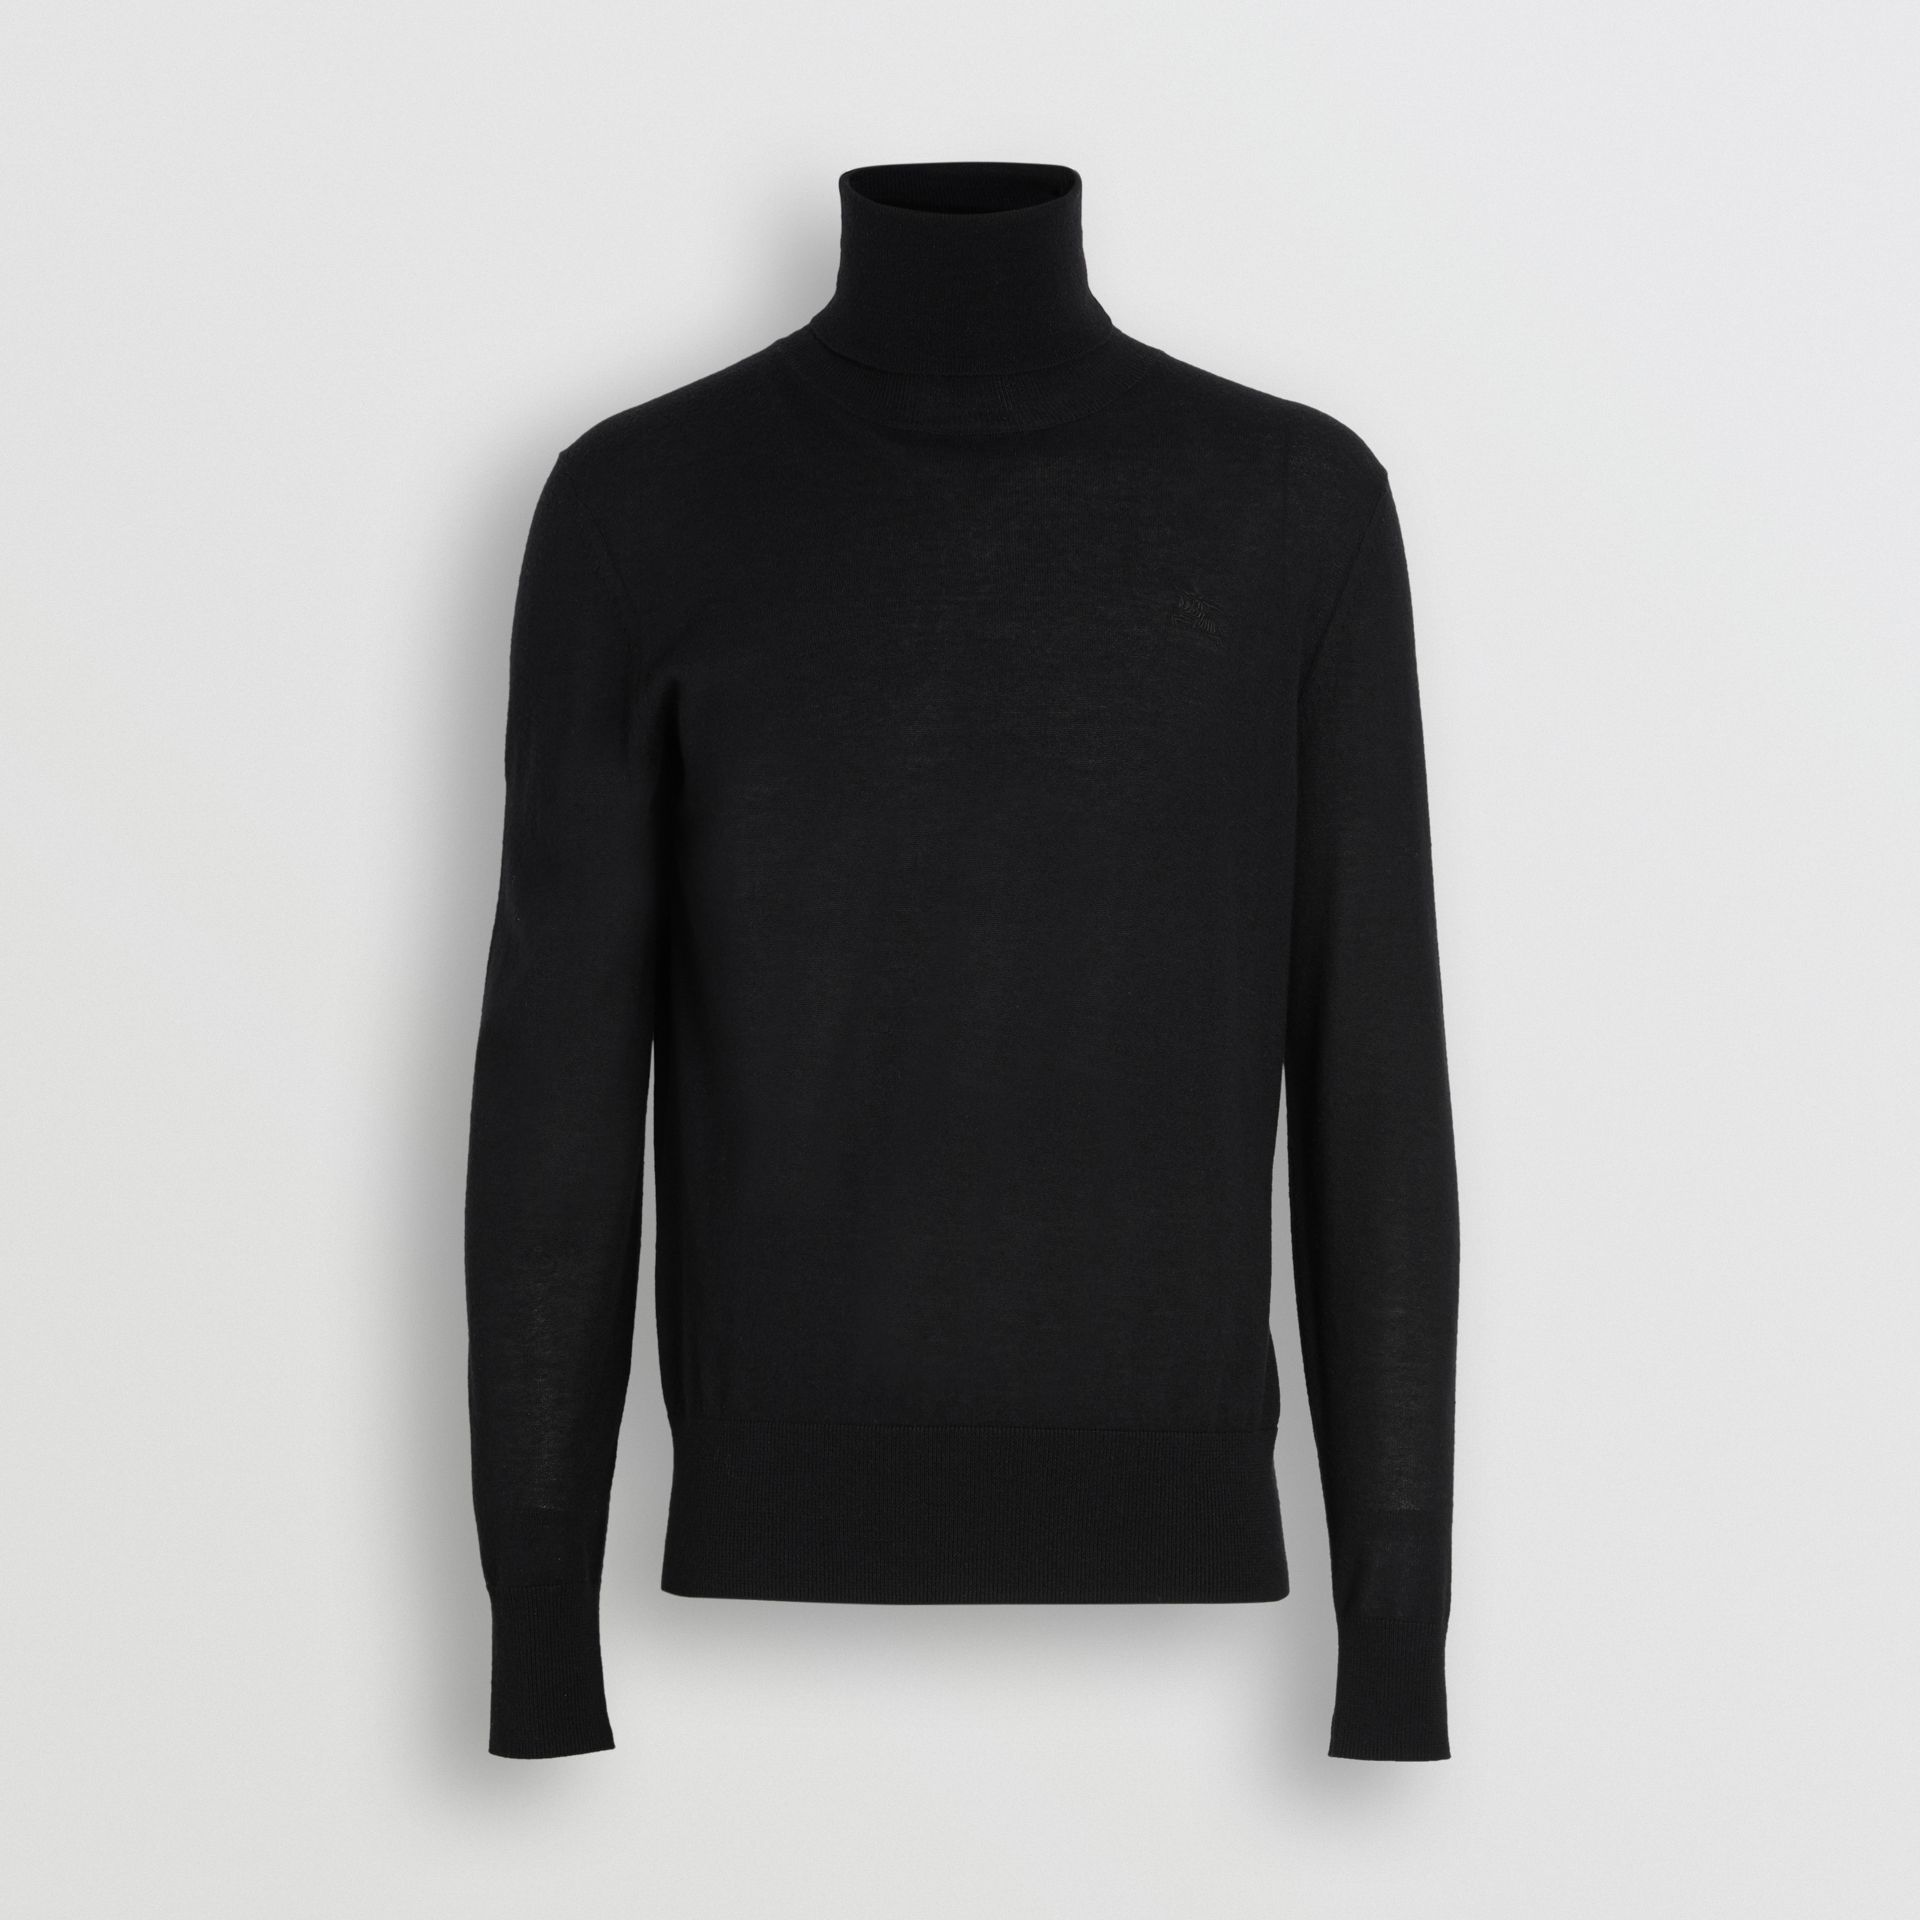 Cashmere Silk Roll-neck Sweater in Black - Men | Burberry - gallery image 3